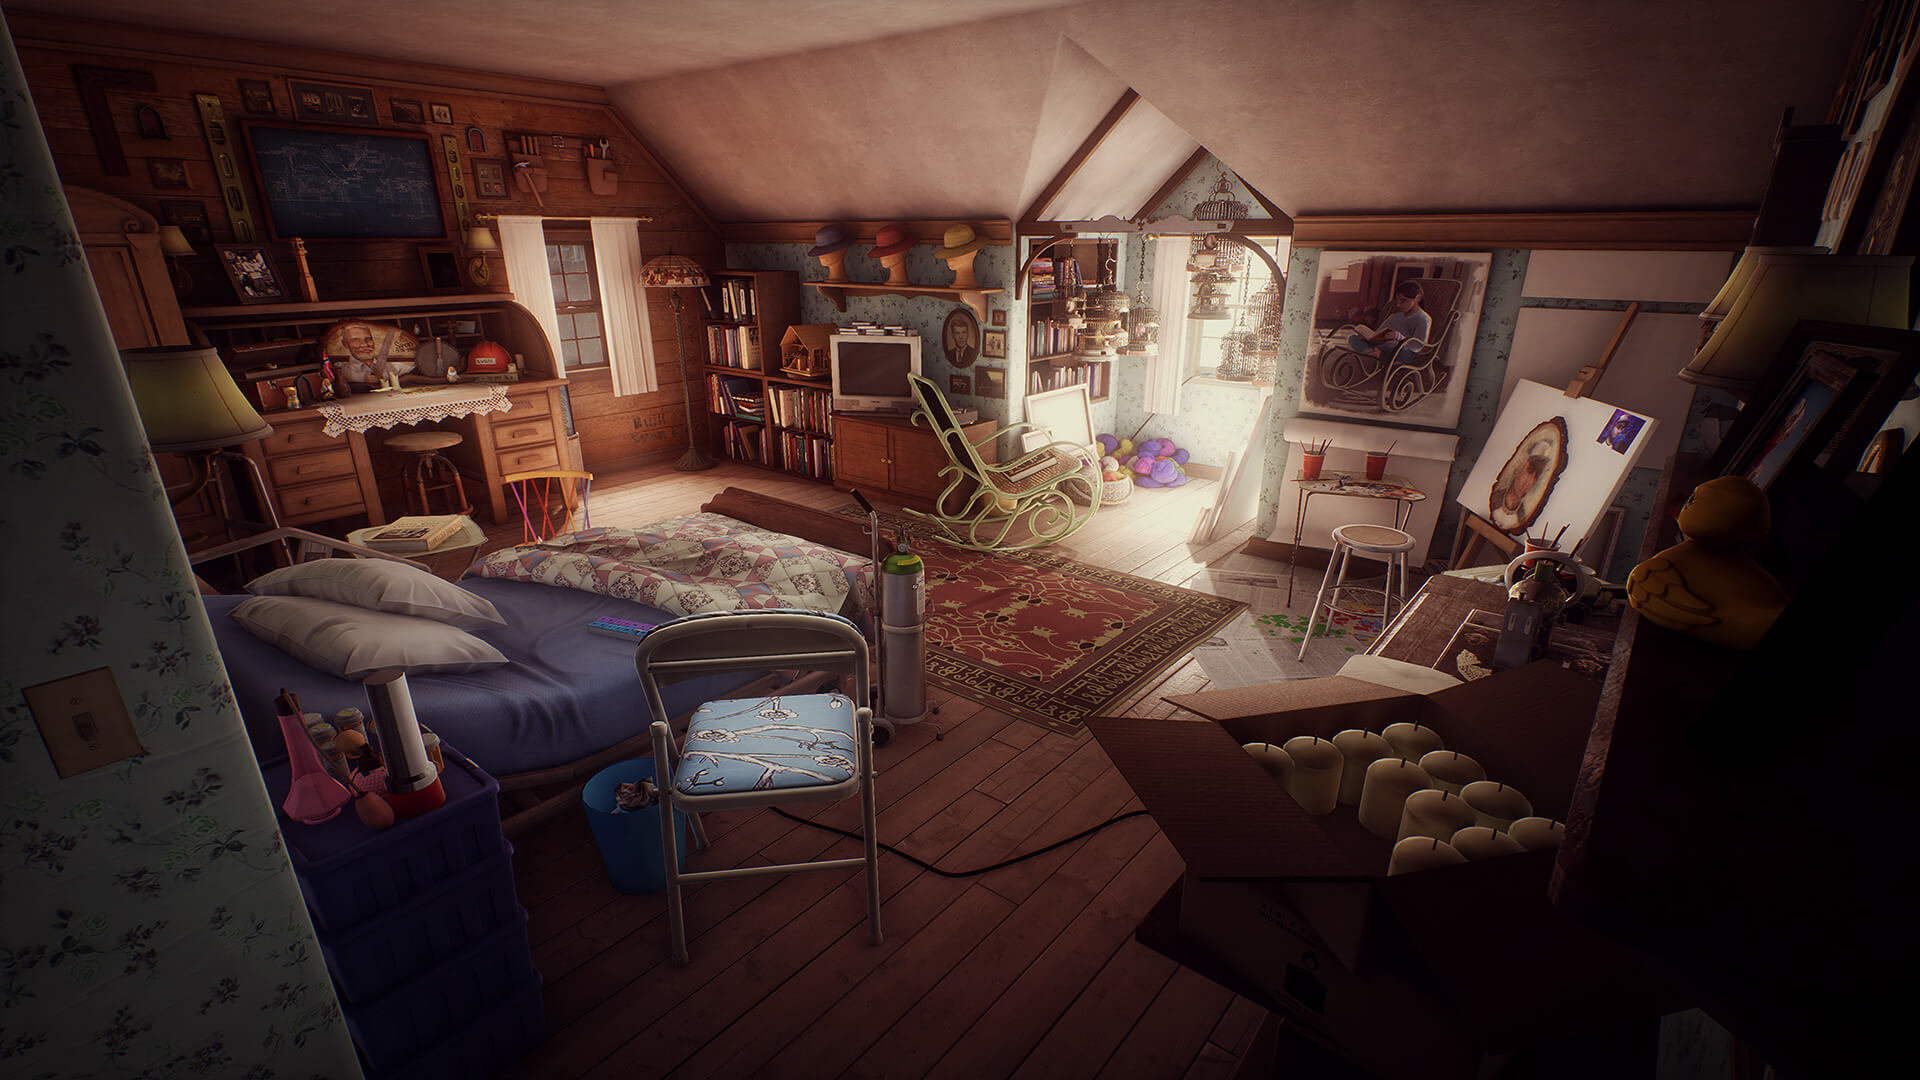 What Remains of Edith Finch bedroom